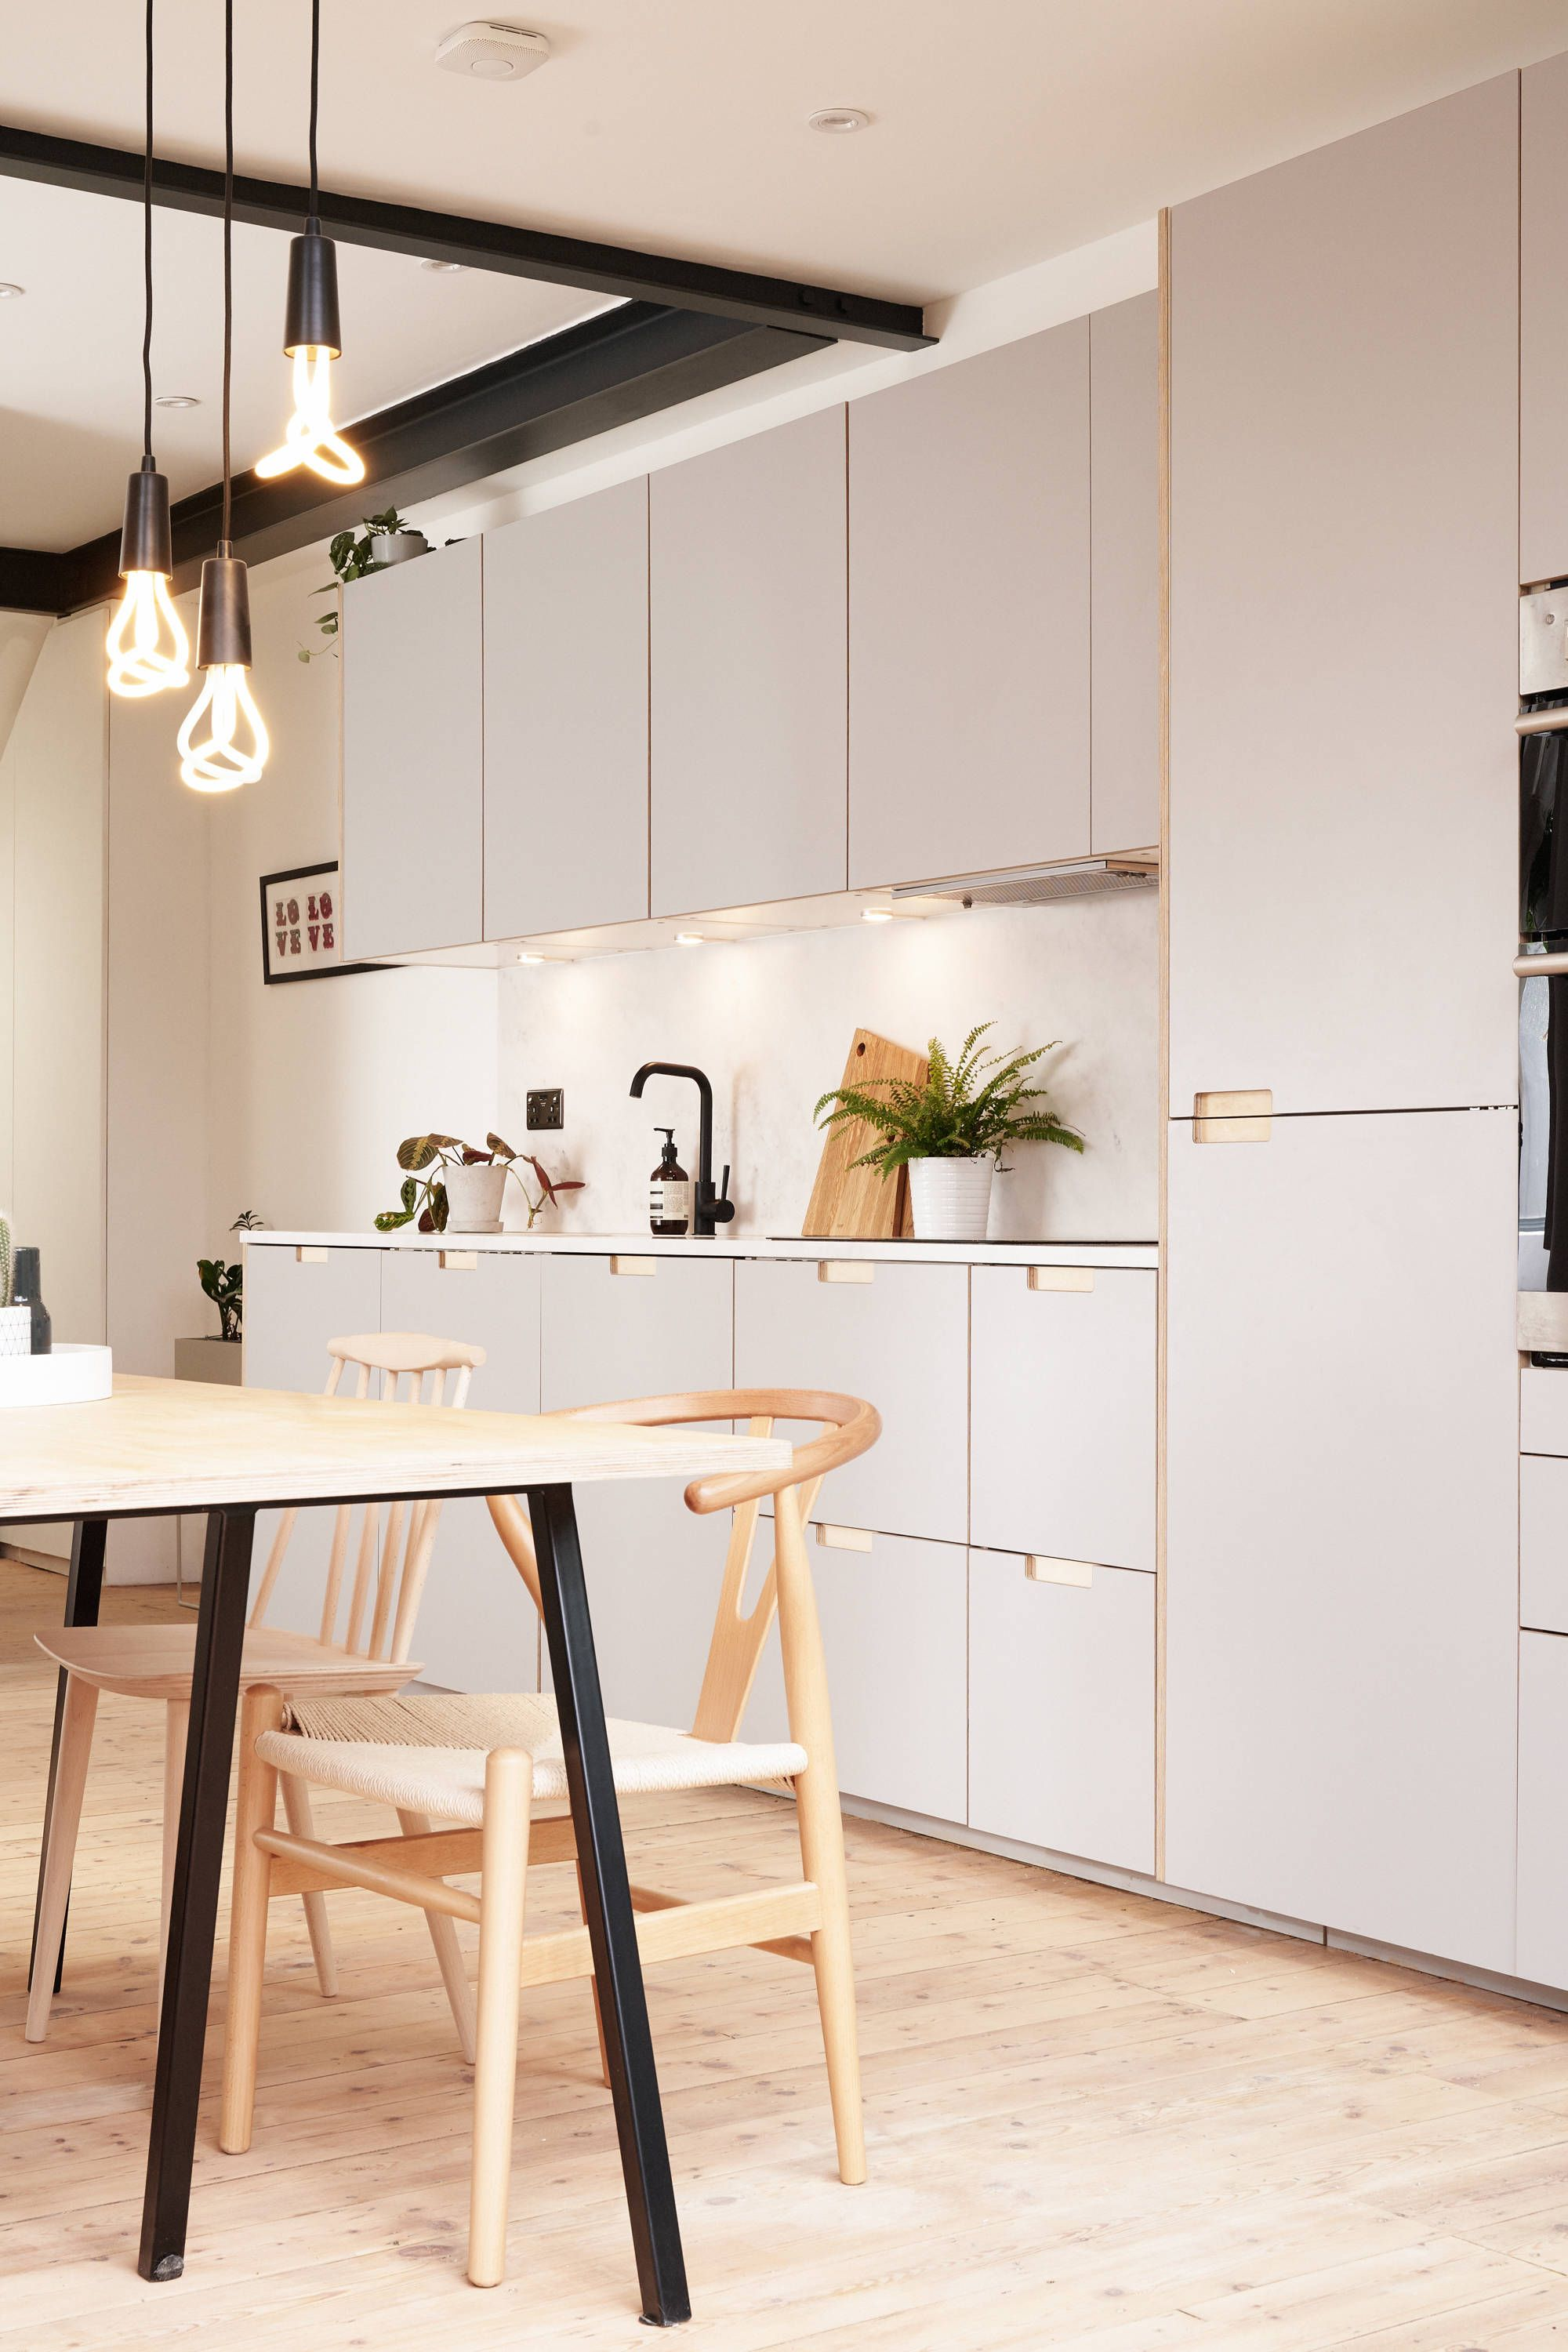 Formica faced plywood kitchen in Fox Grey by Plykea